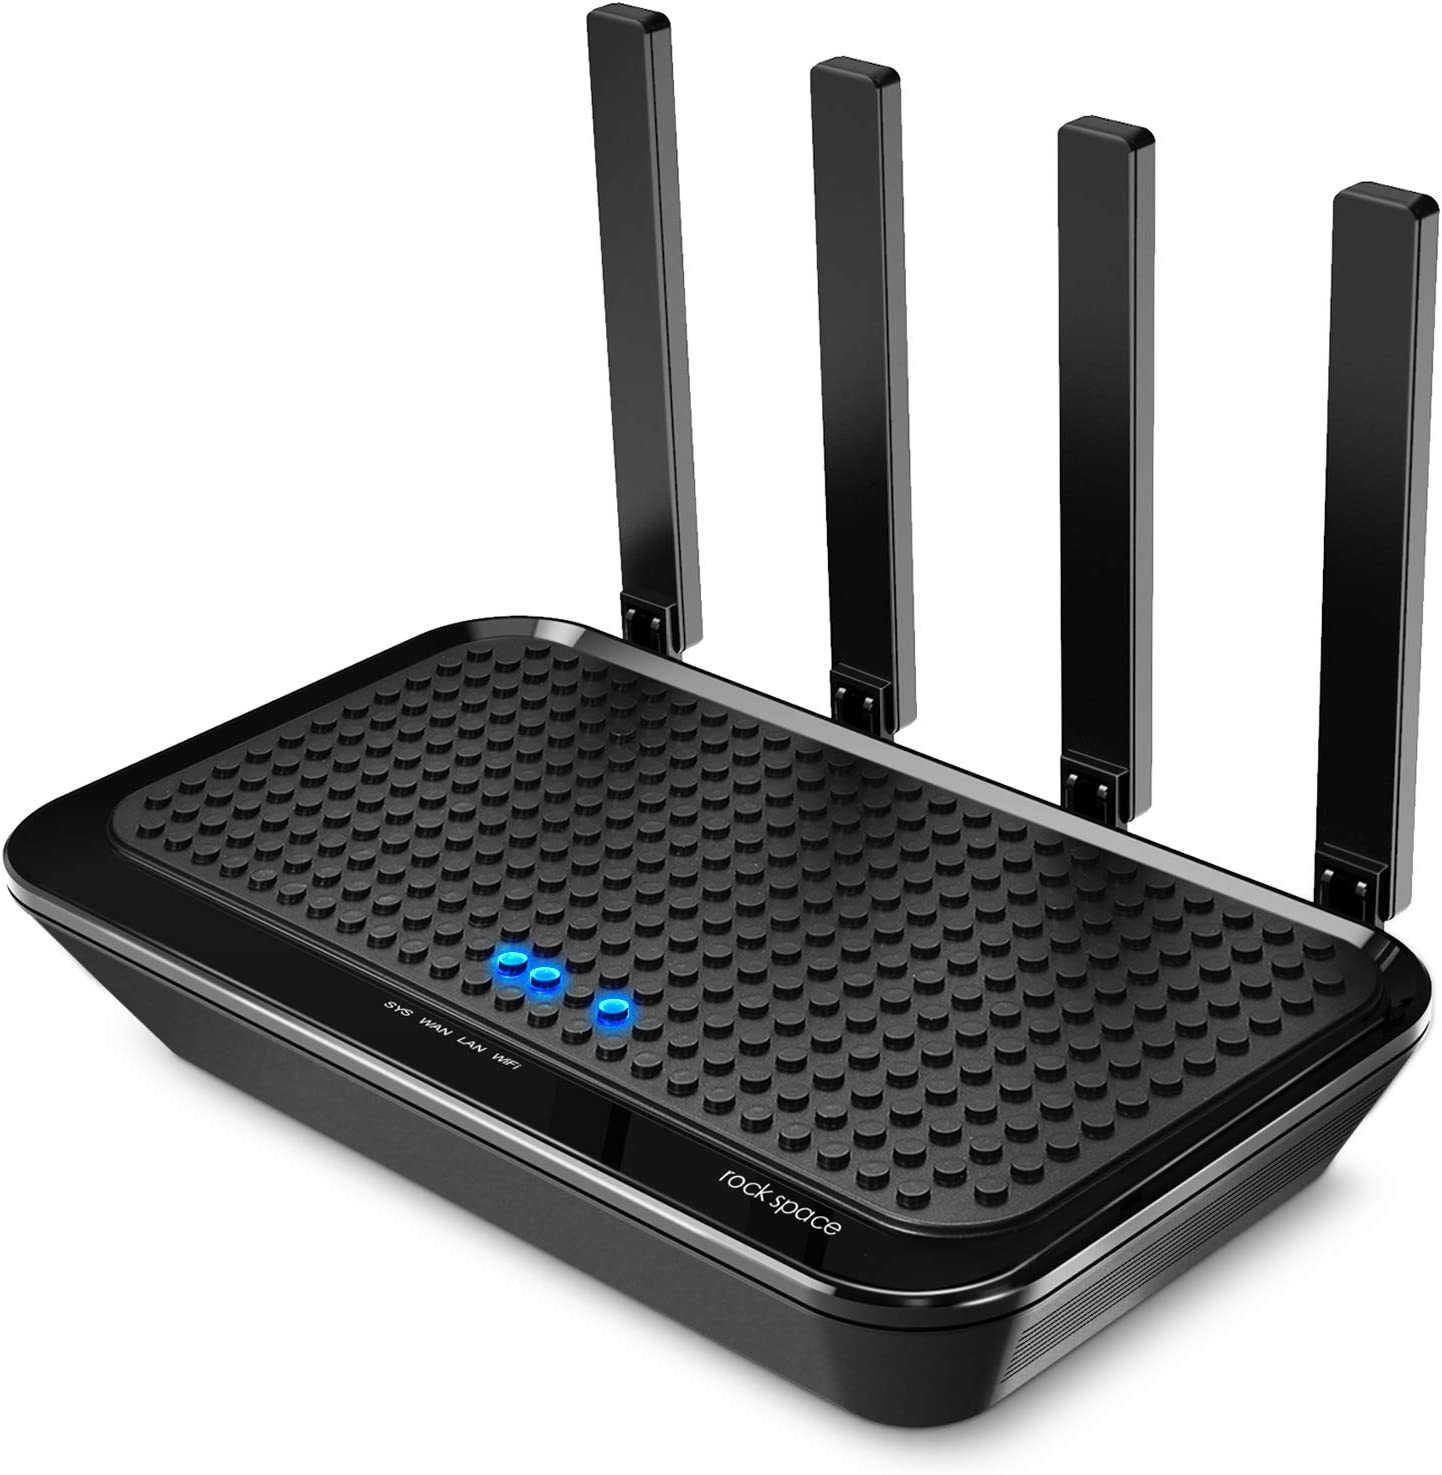 WiFi Router-Router,Routers for Wireless Internet,AC2100 Router,Dual-Band Wireless Router,Wireless Router Gaming,MU-MIMO&Beamforming Technology for Large House,APP Control,Strong Signal, One SSID